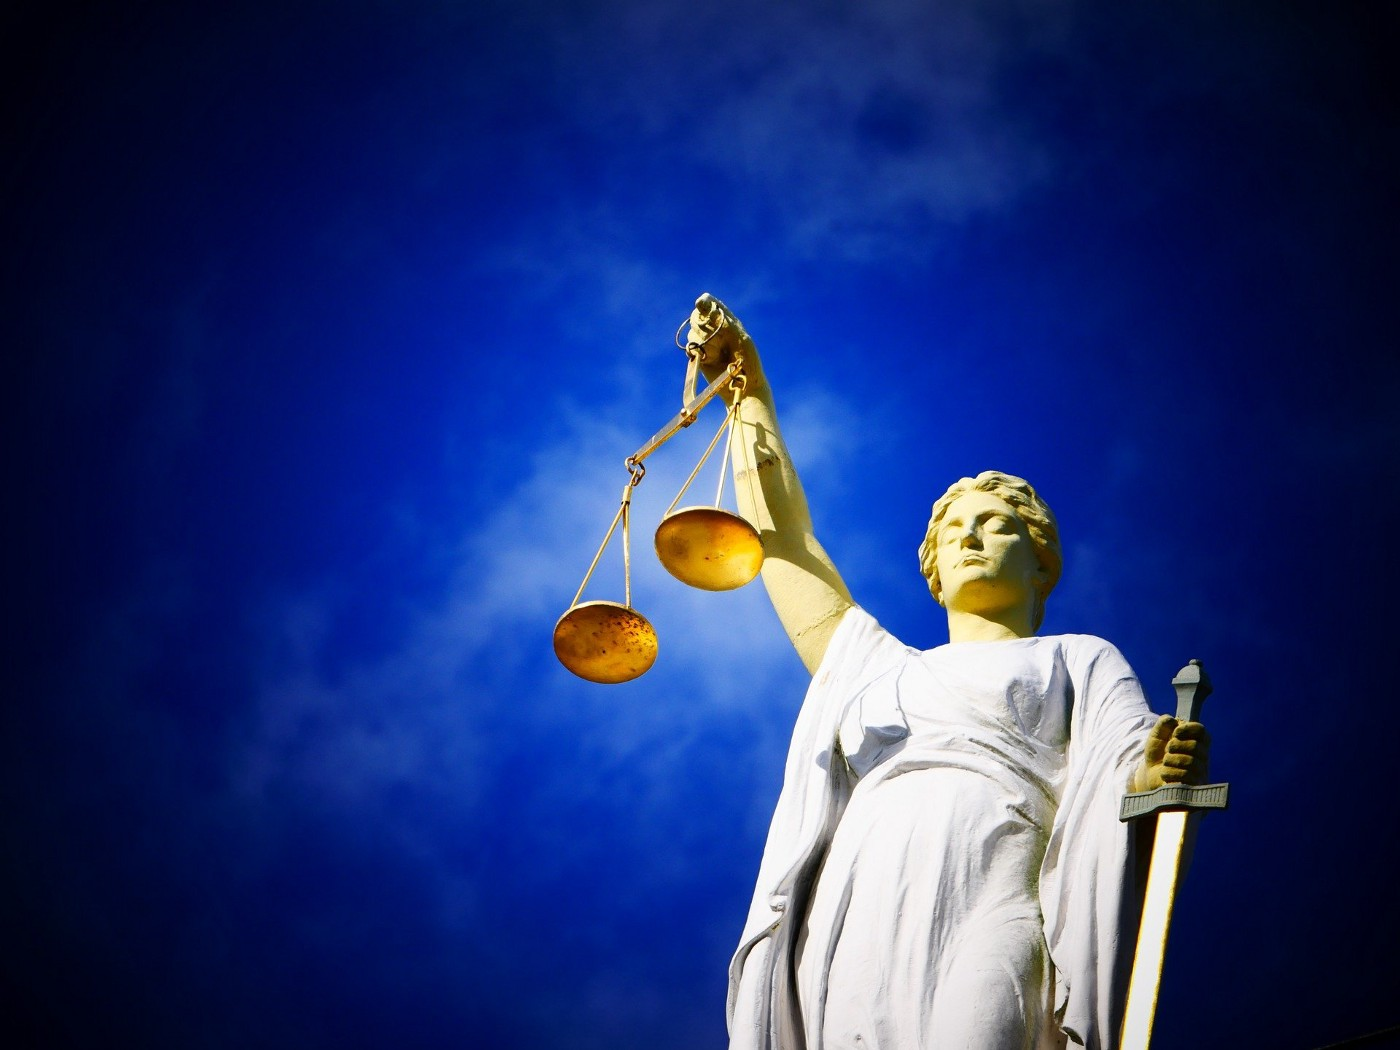 Lady justice holding the scales of justice in her right hand and a sword in her left, set against a blue sky background.